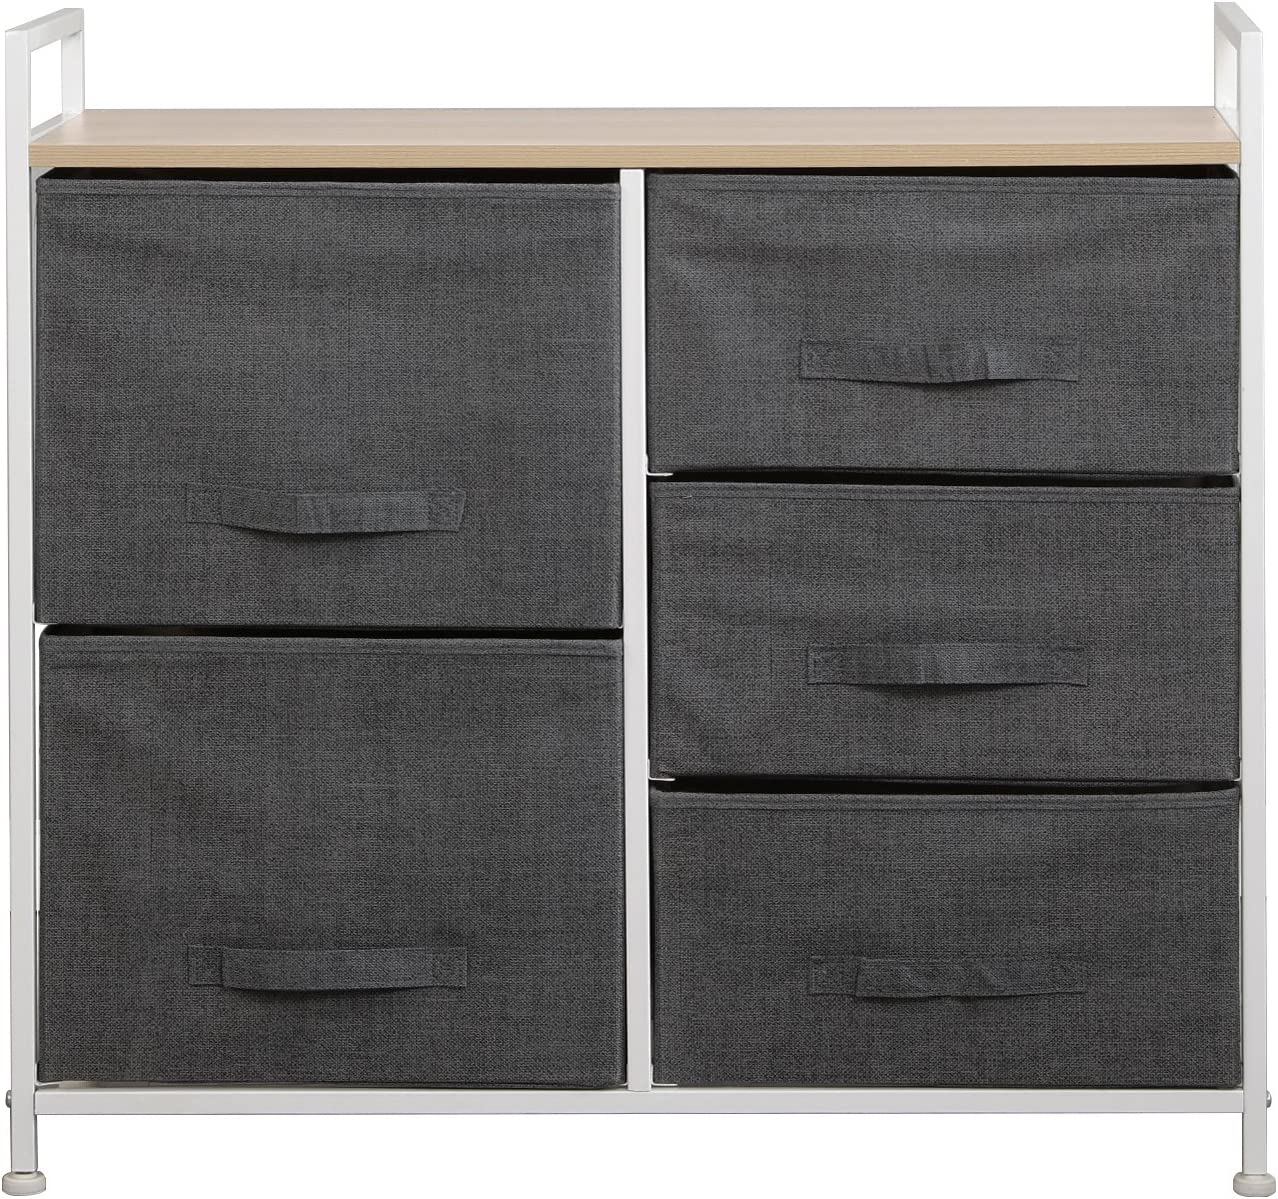 Soges Fabric 11-Drawer Storage Organizer Unit for Bedroom, or Play Room with  Fabric Bin Storage Unit,Grey 11-GY-CA